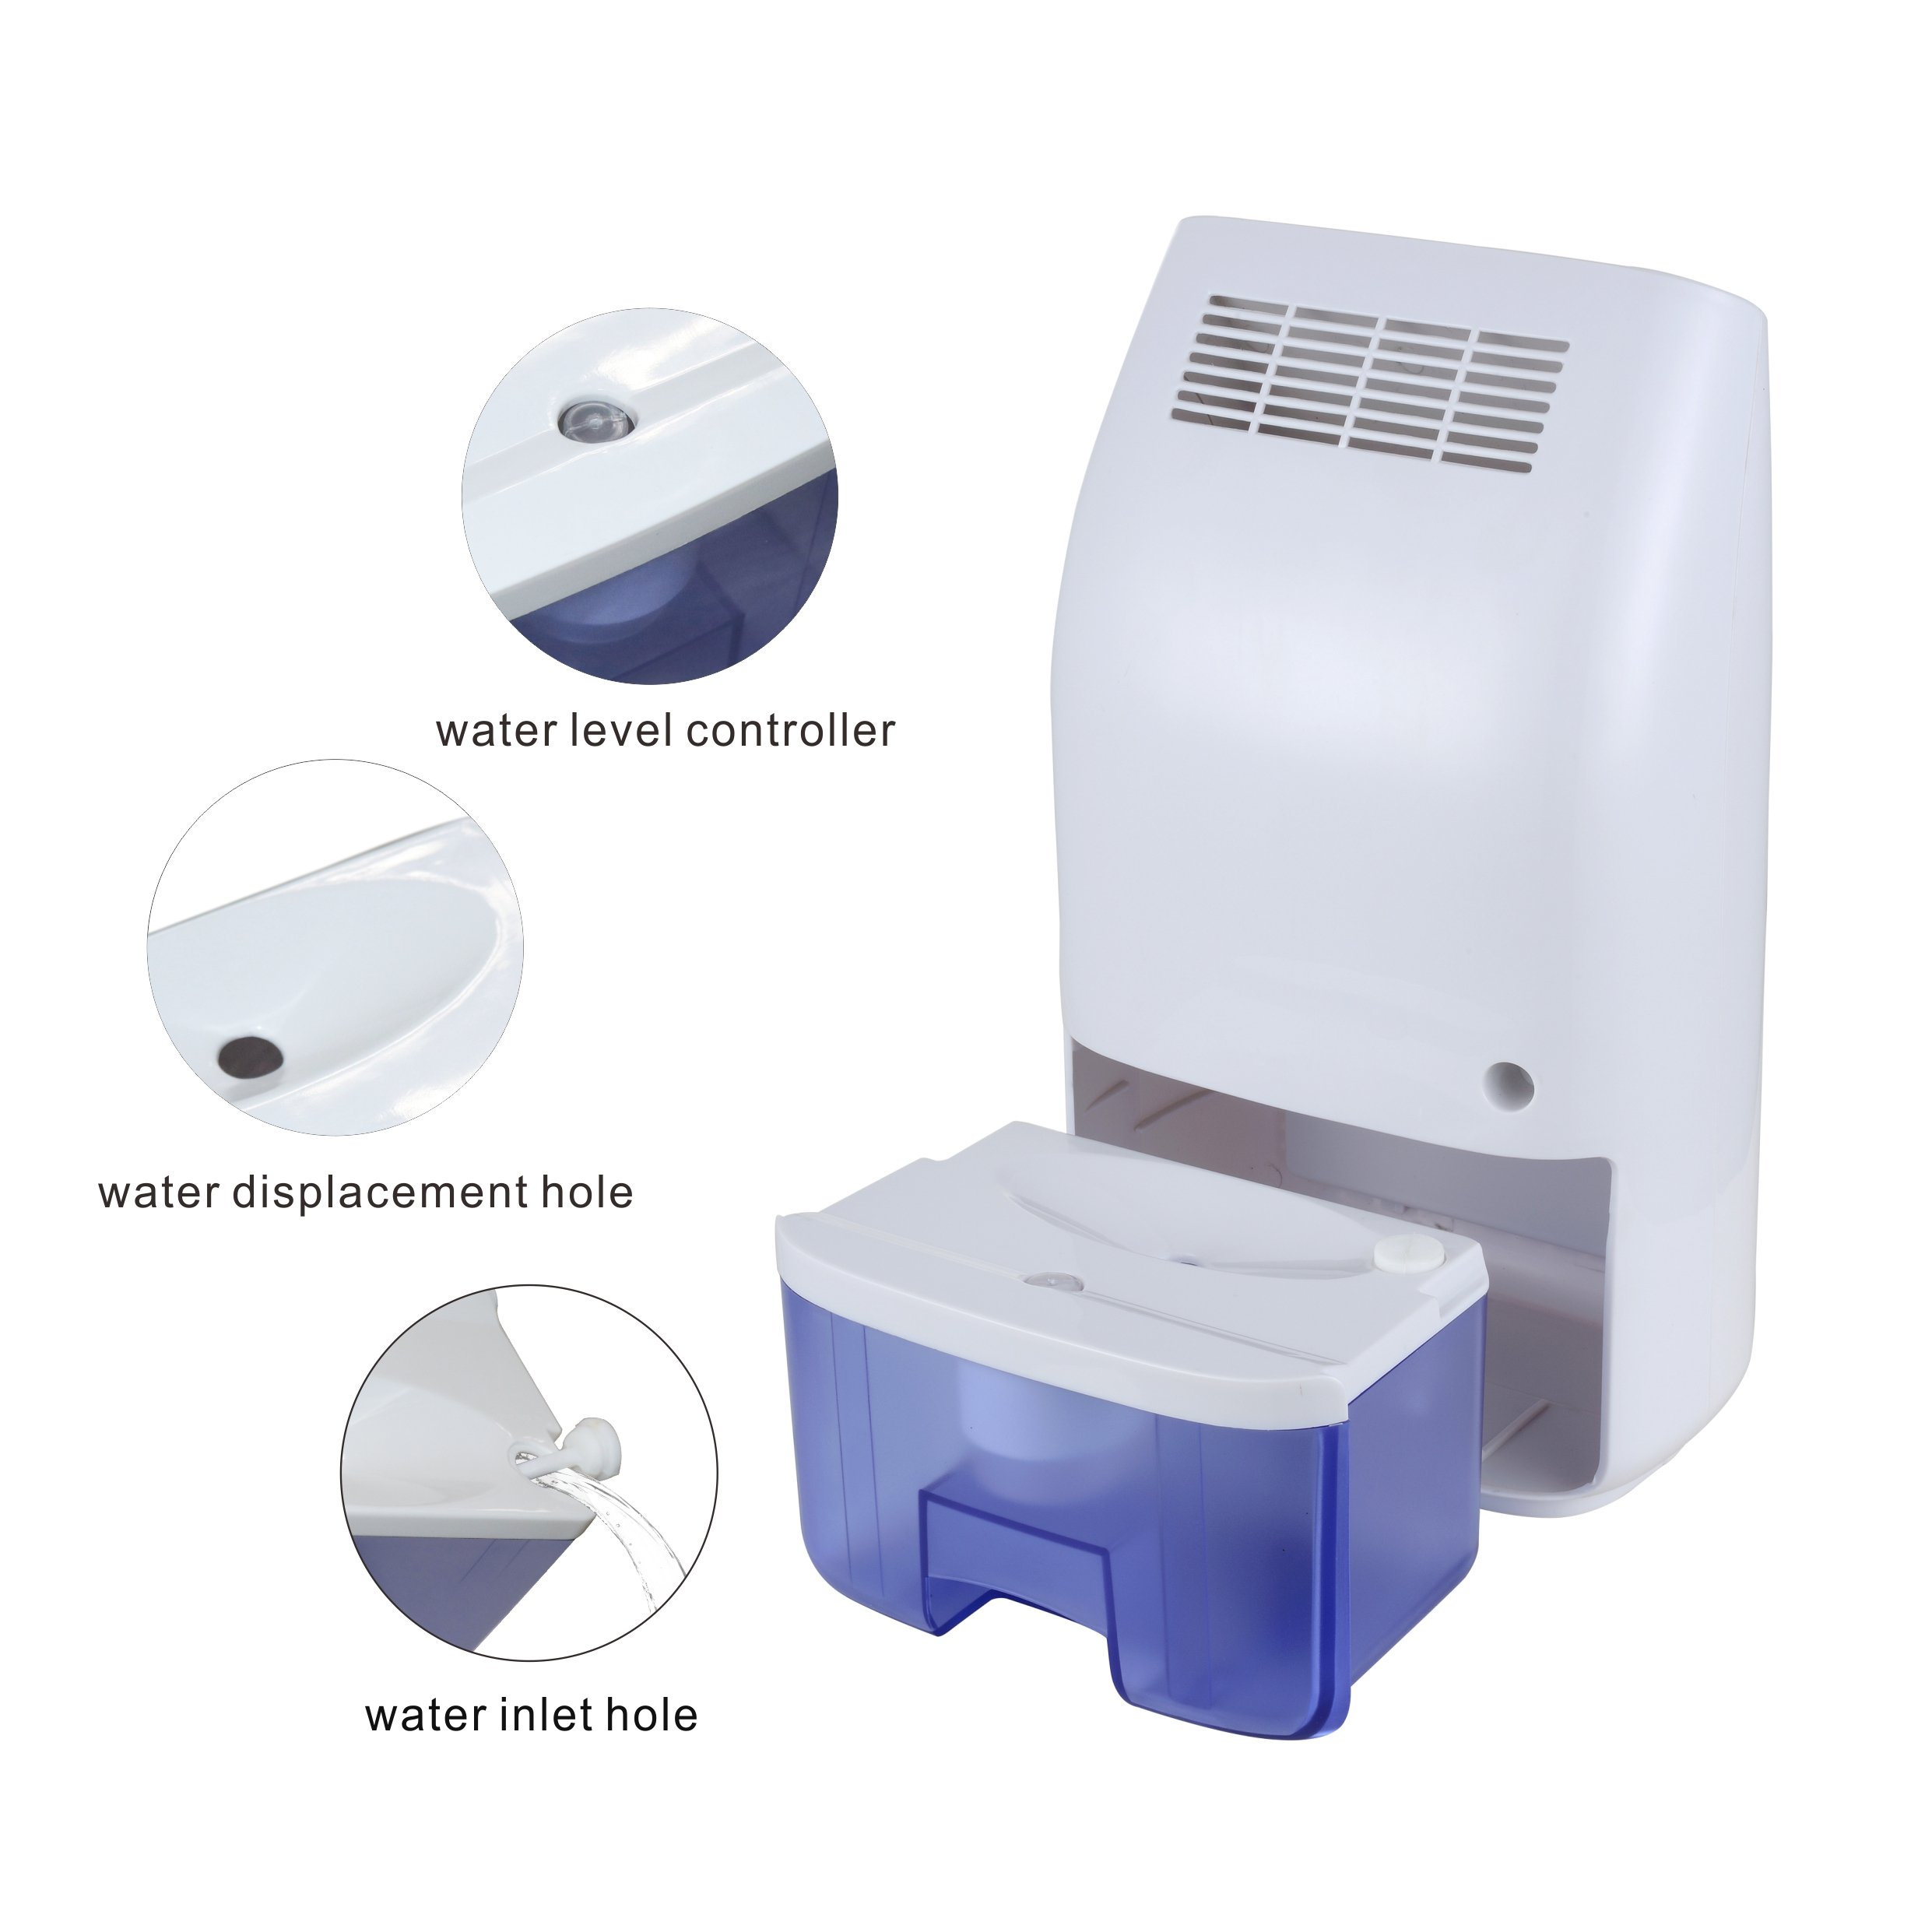 Afloia Dehumidifier Mini for Small Room 700ml Small Dehumidifier Queit Portable Air Dehumidifier for Home